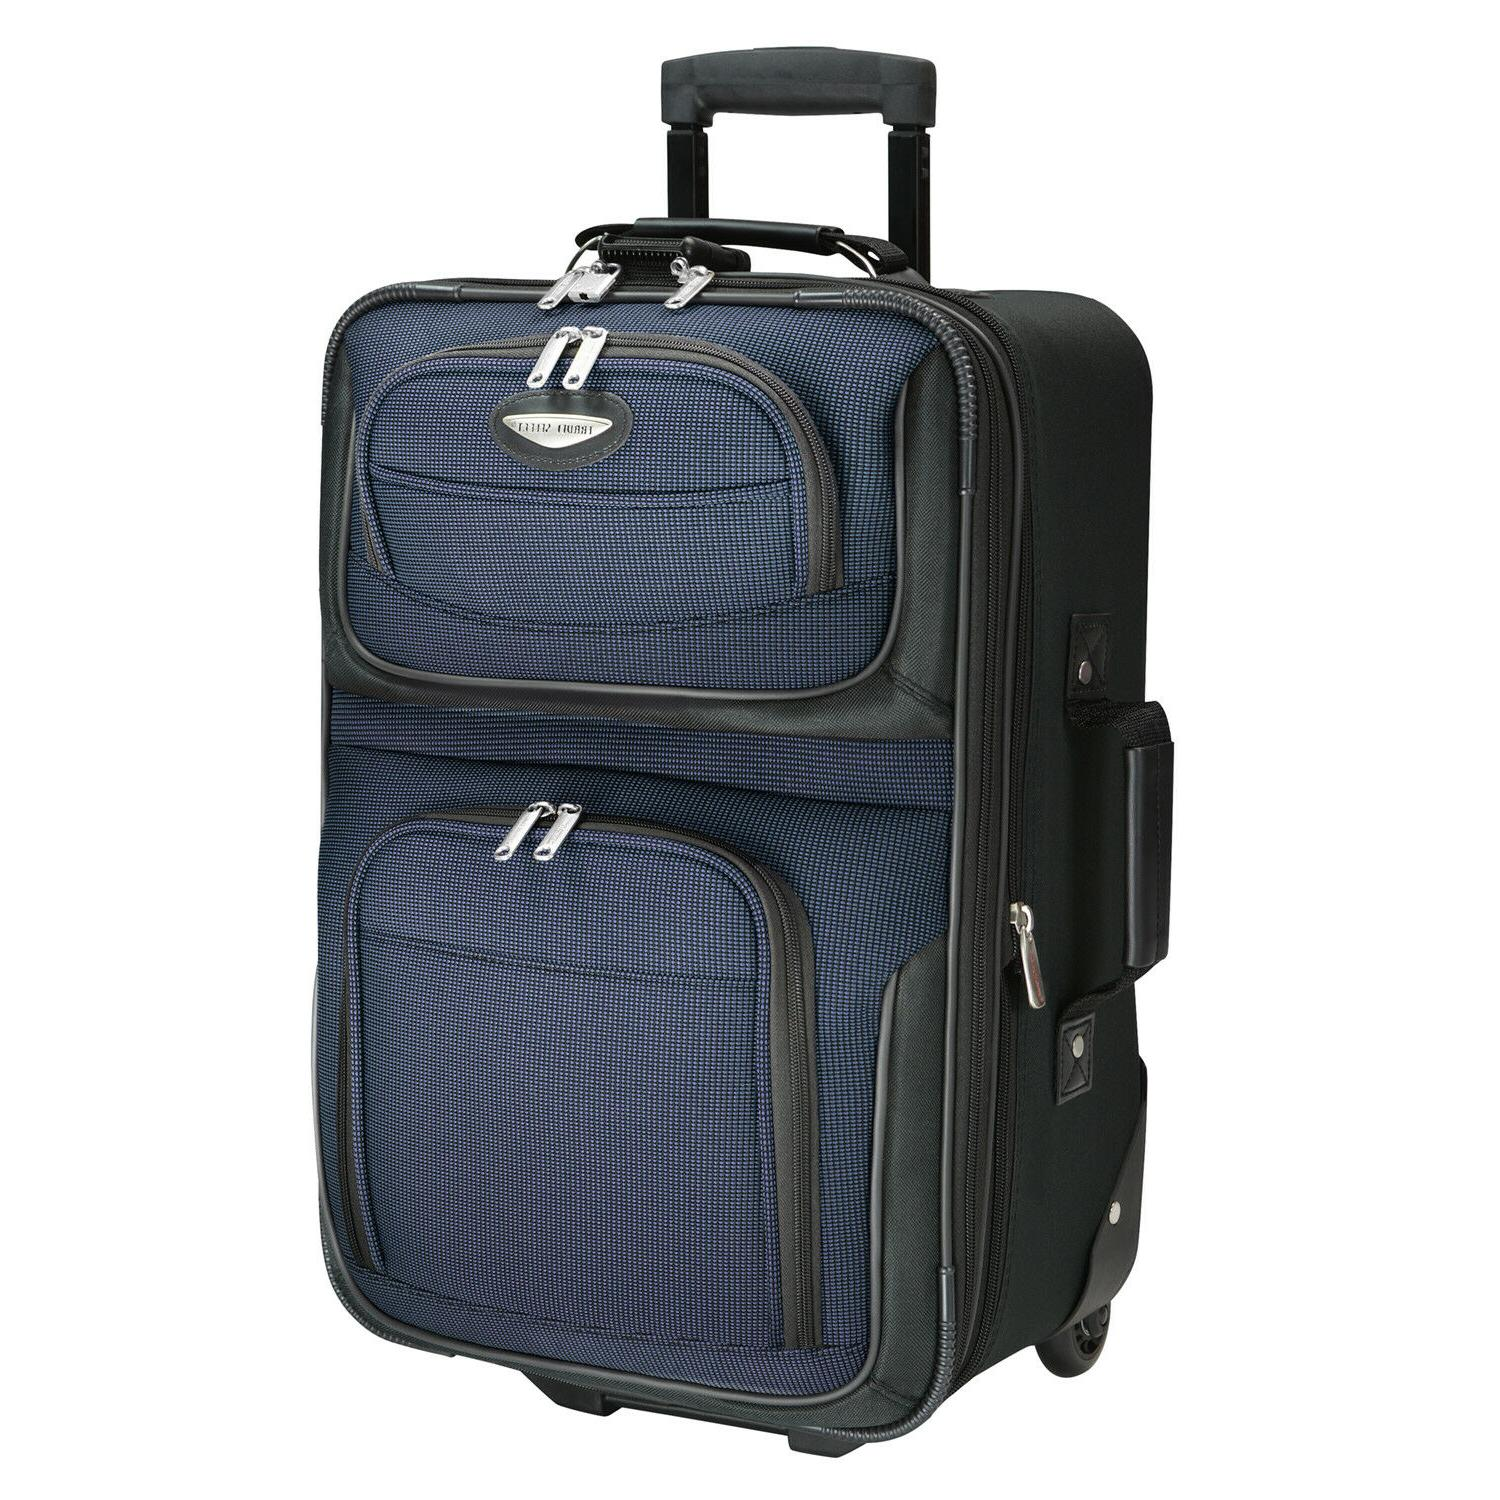 Traveler's Choice Amsterdam Carry-on Suitcase